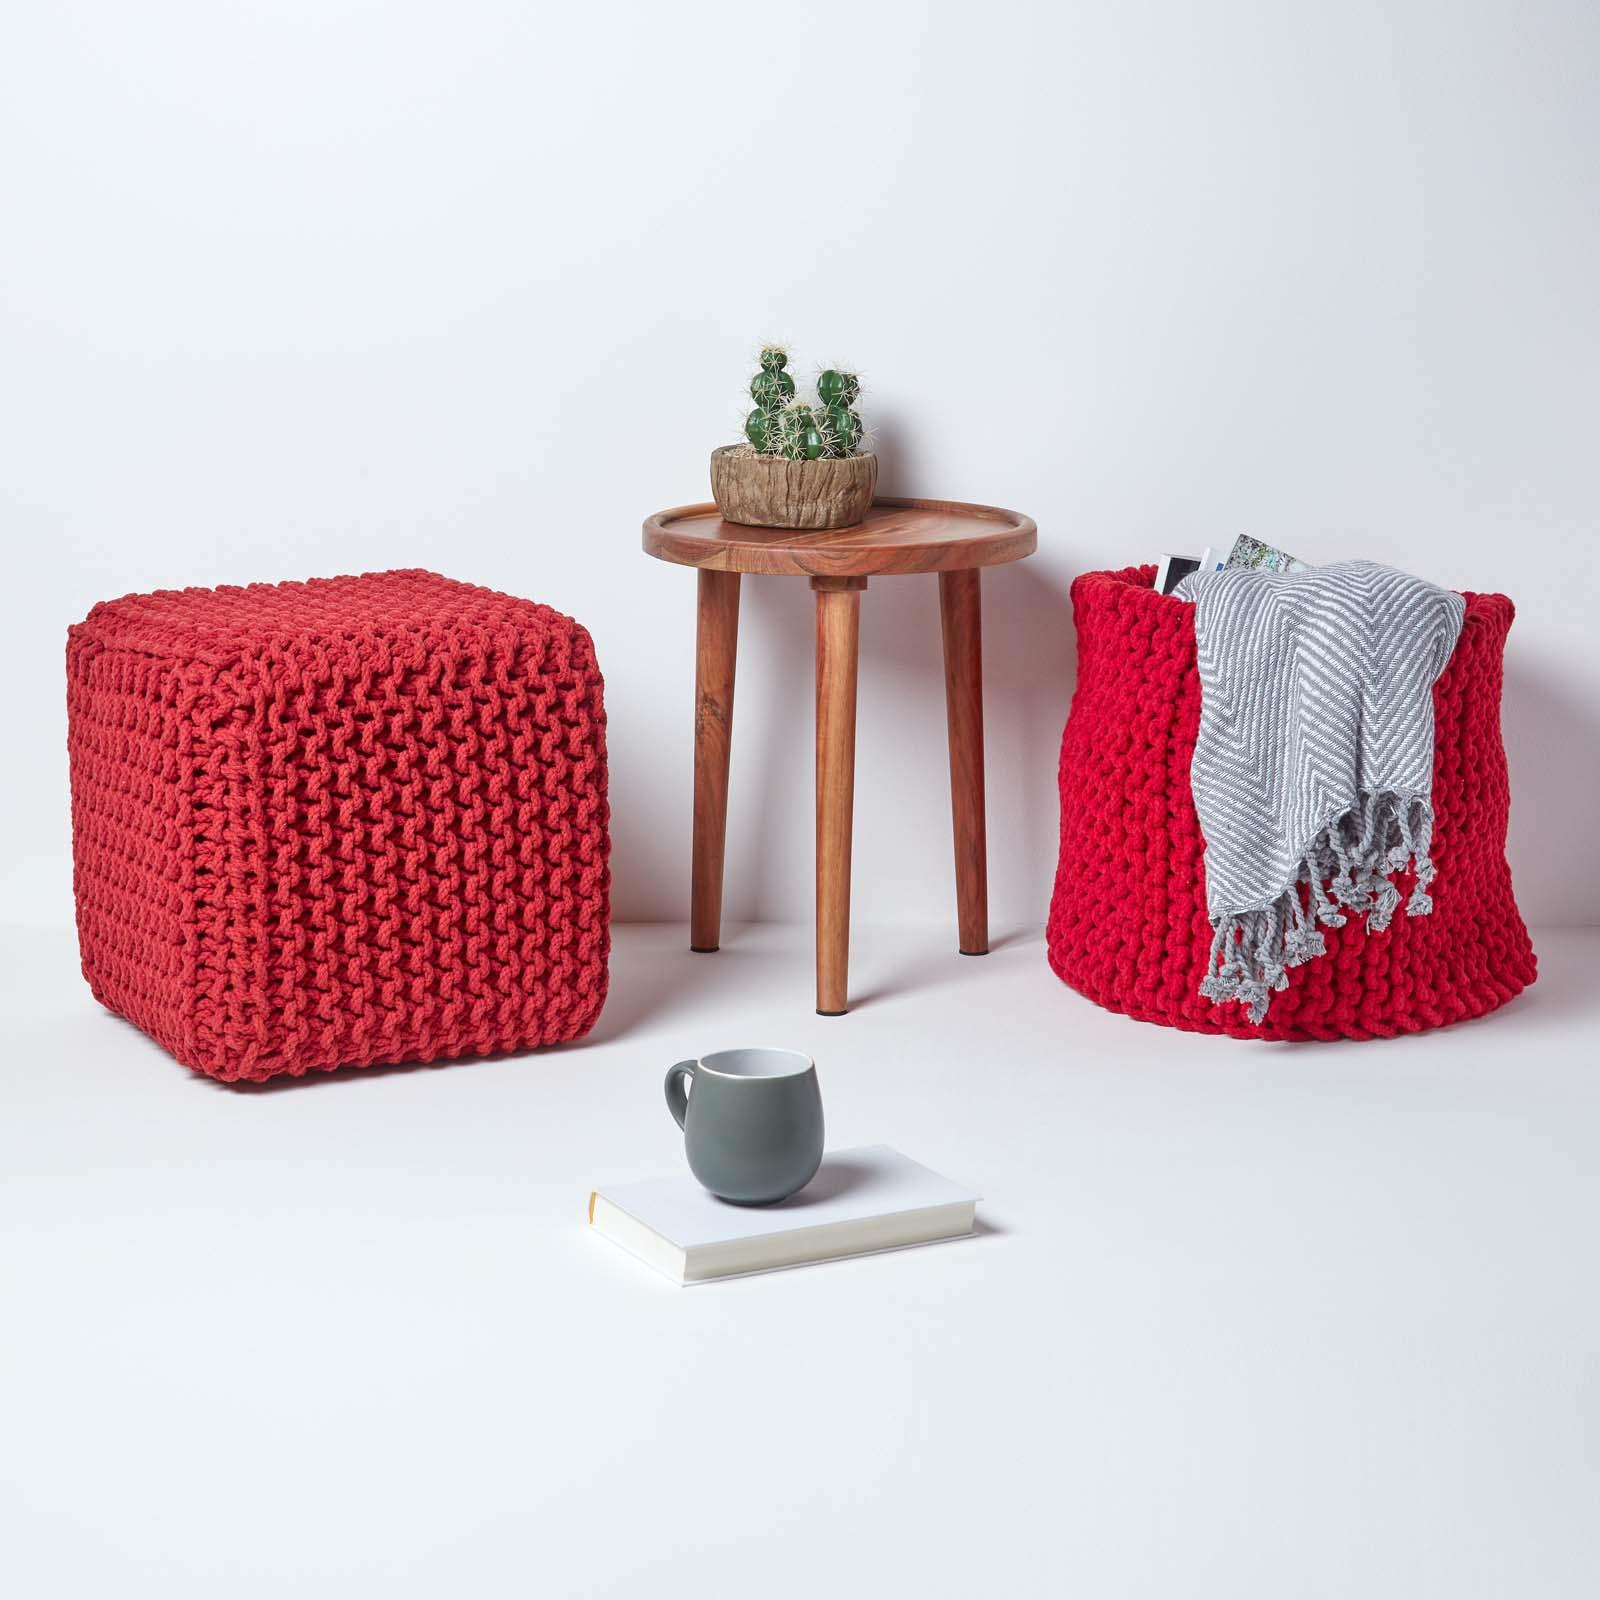 Hand-Knitted-100-Cotton-Pouffes-Round-Sphere-Or-Cube-Square-Chunky-Footstools thumbnail 180